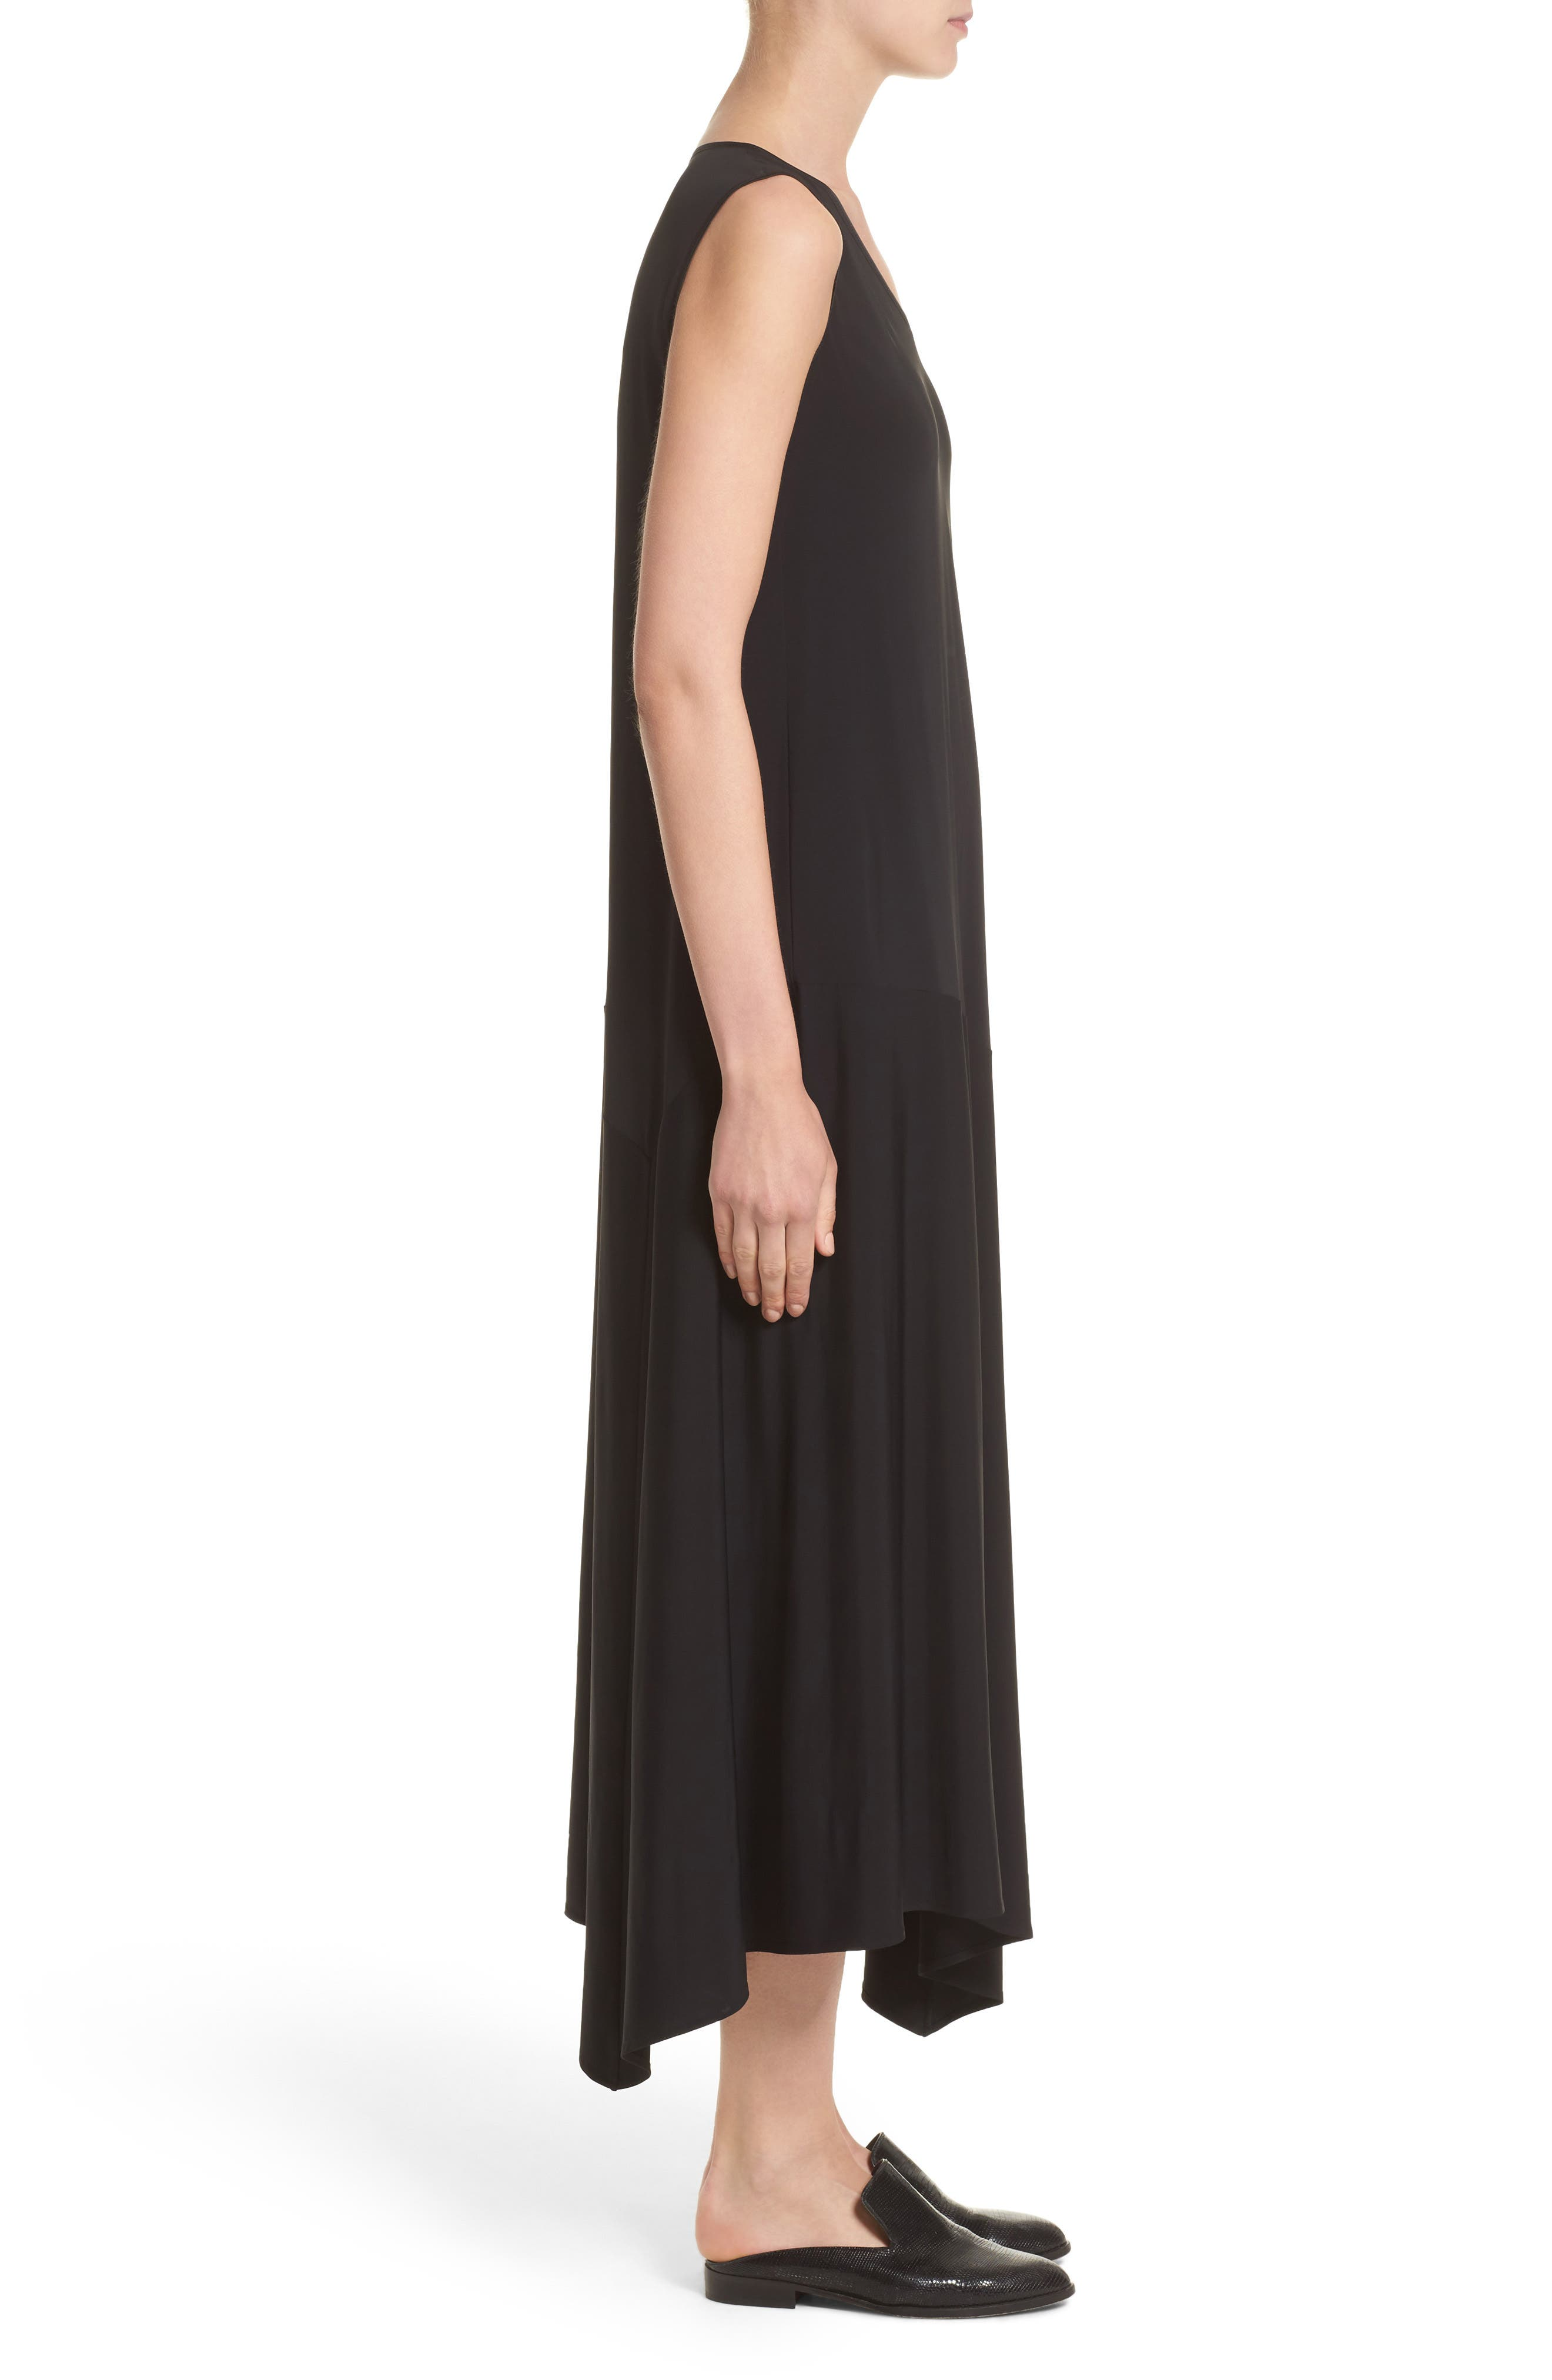 Cultivated Crepe Jersey Asymmetrical Dress,                             Alternate thumbnail 3, color,                             001